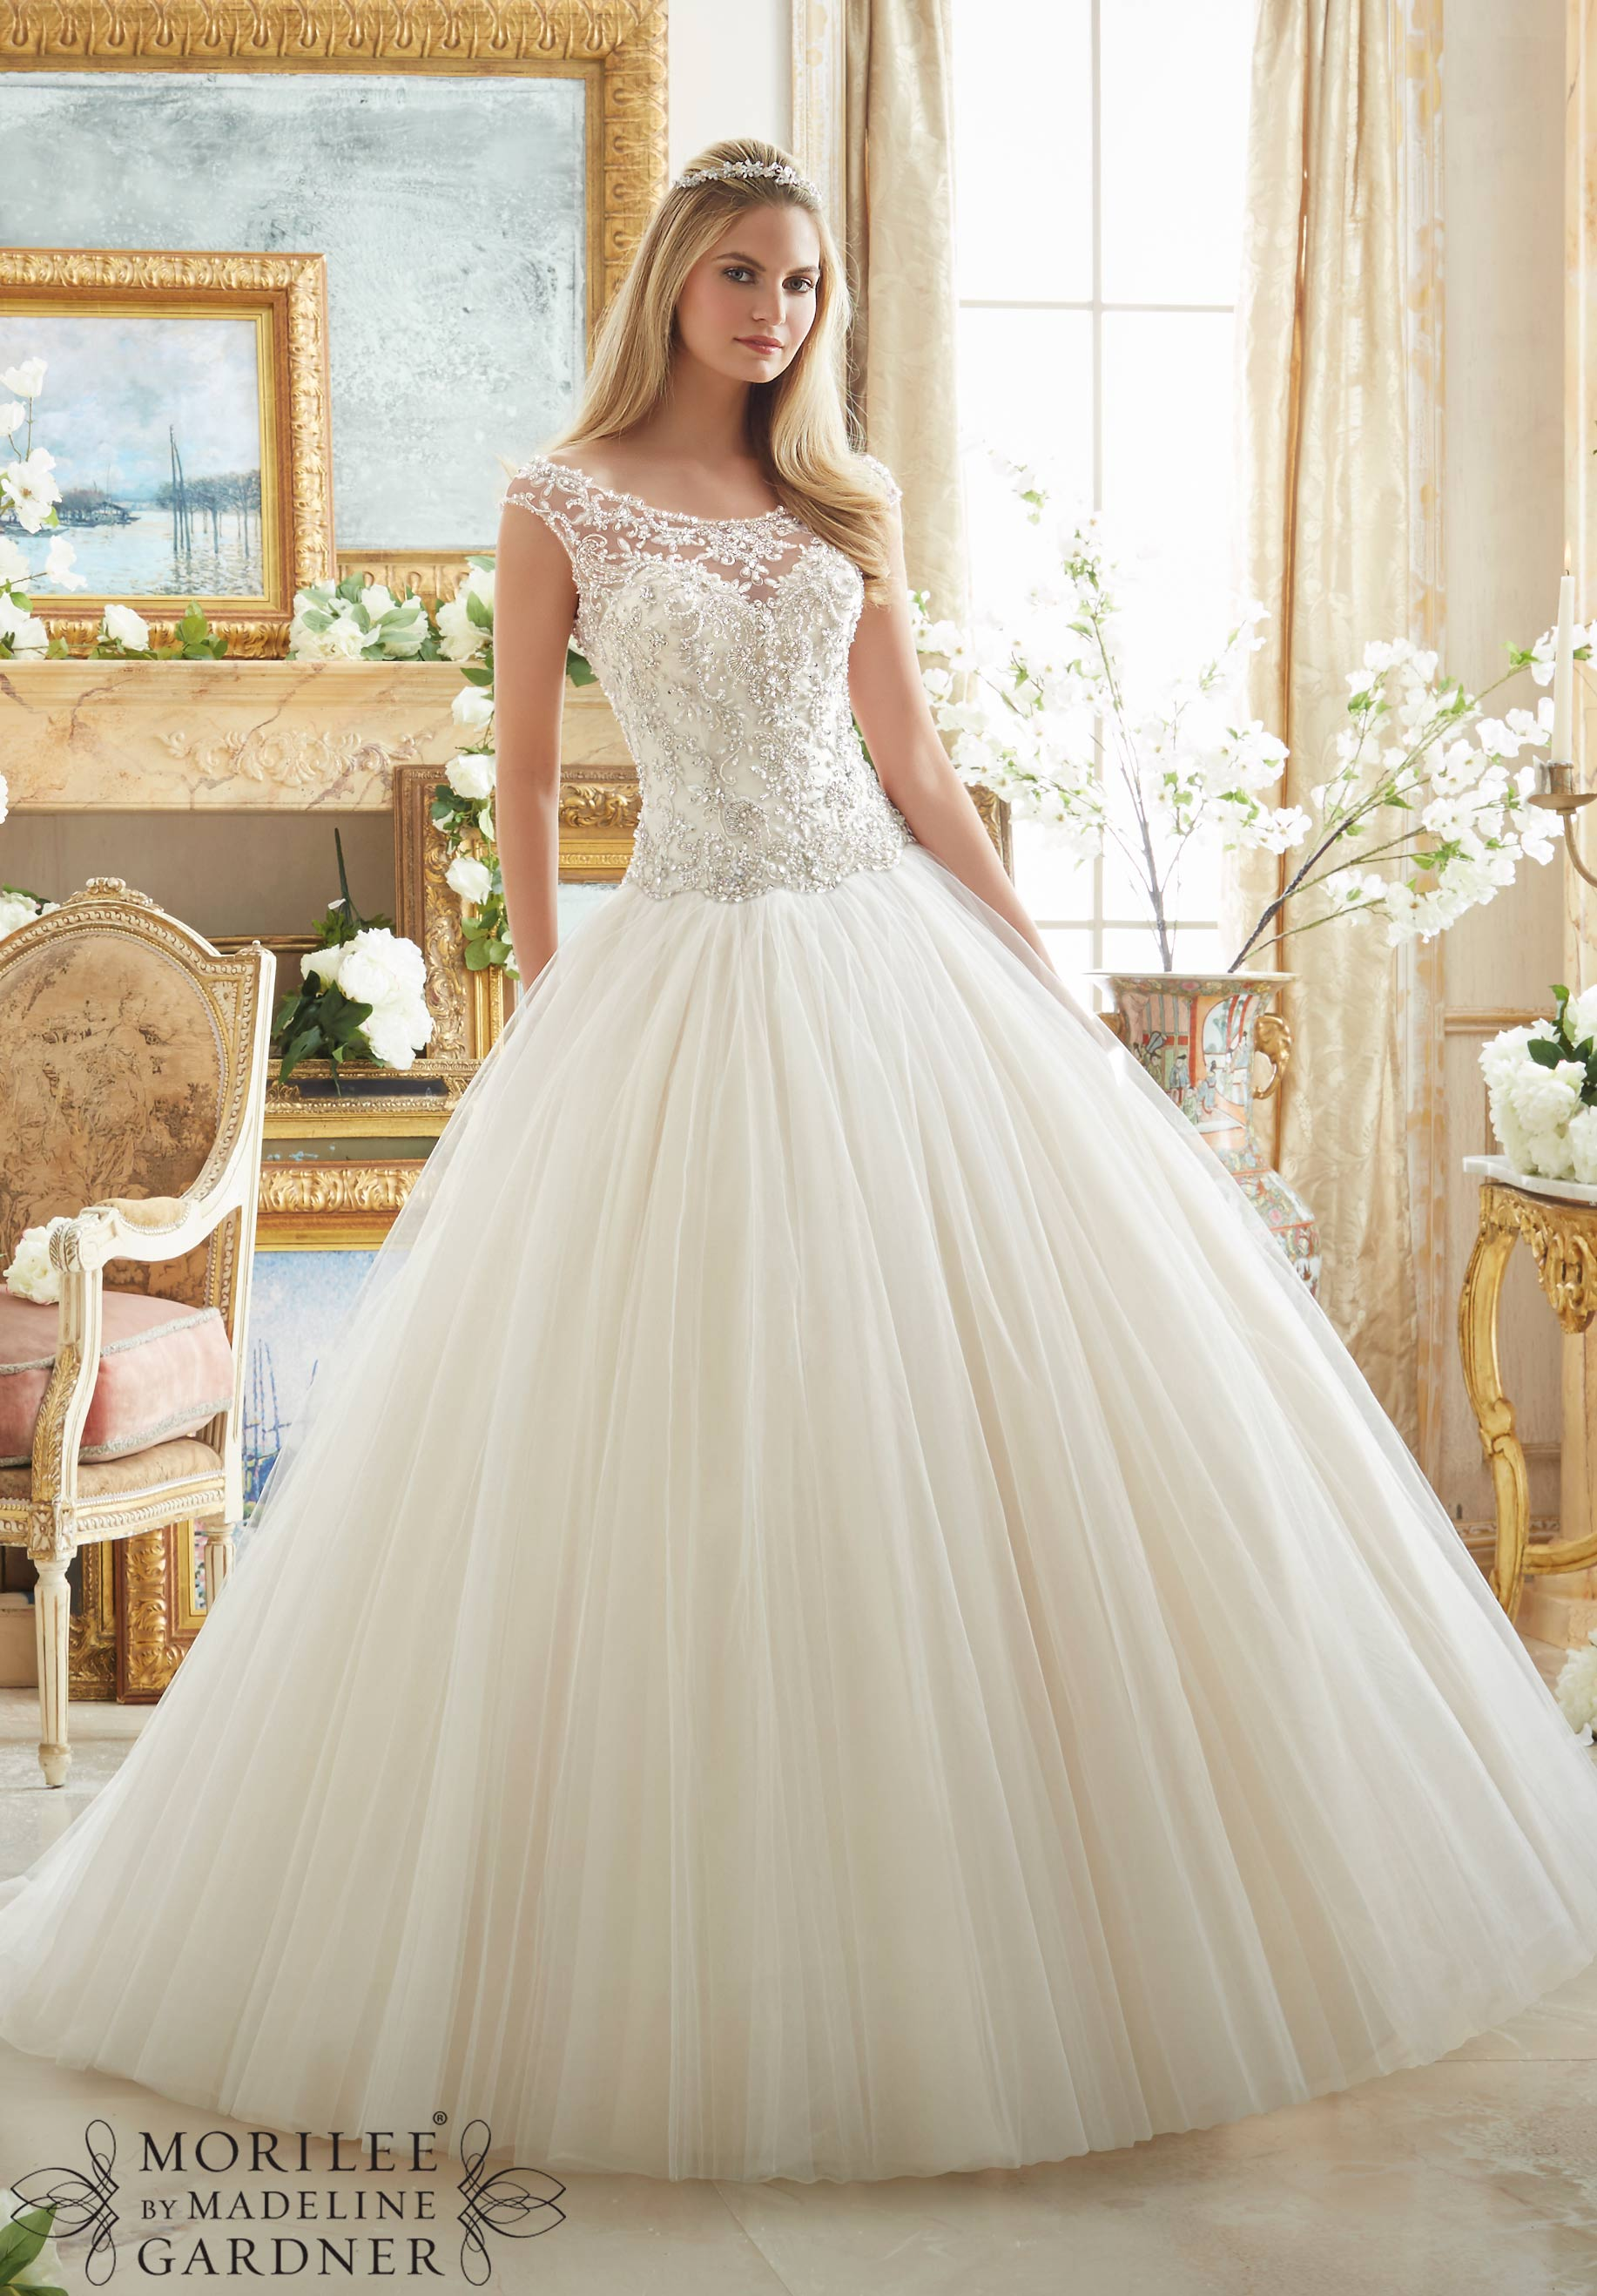 How To Choose The Right Wedding Dress Style For Your Body